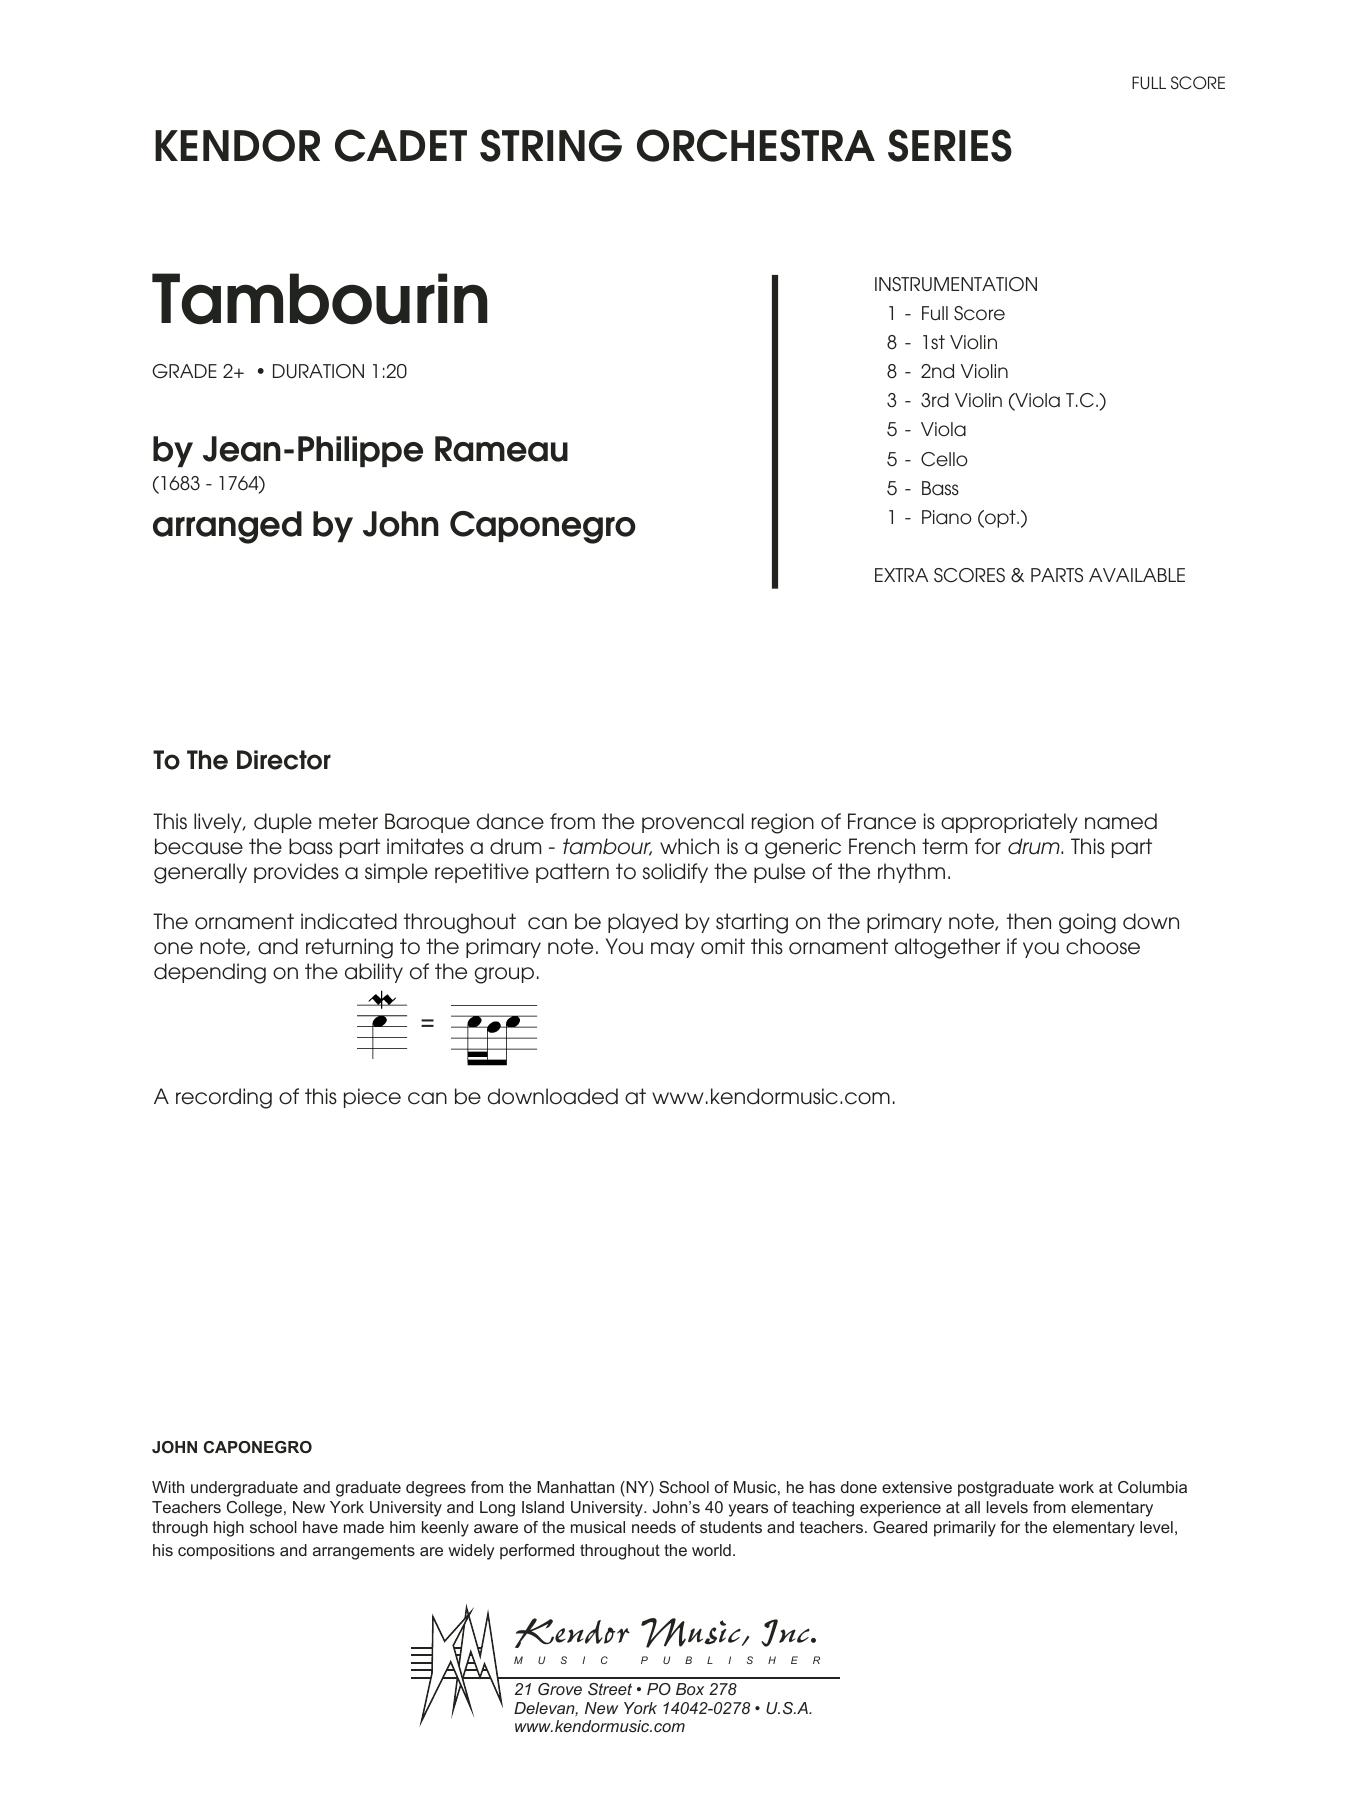 John Caponegro Tambourin - Full Score sheet music notes and chords. Download Printable PDF.